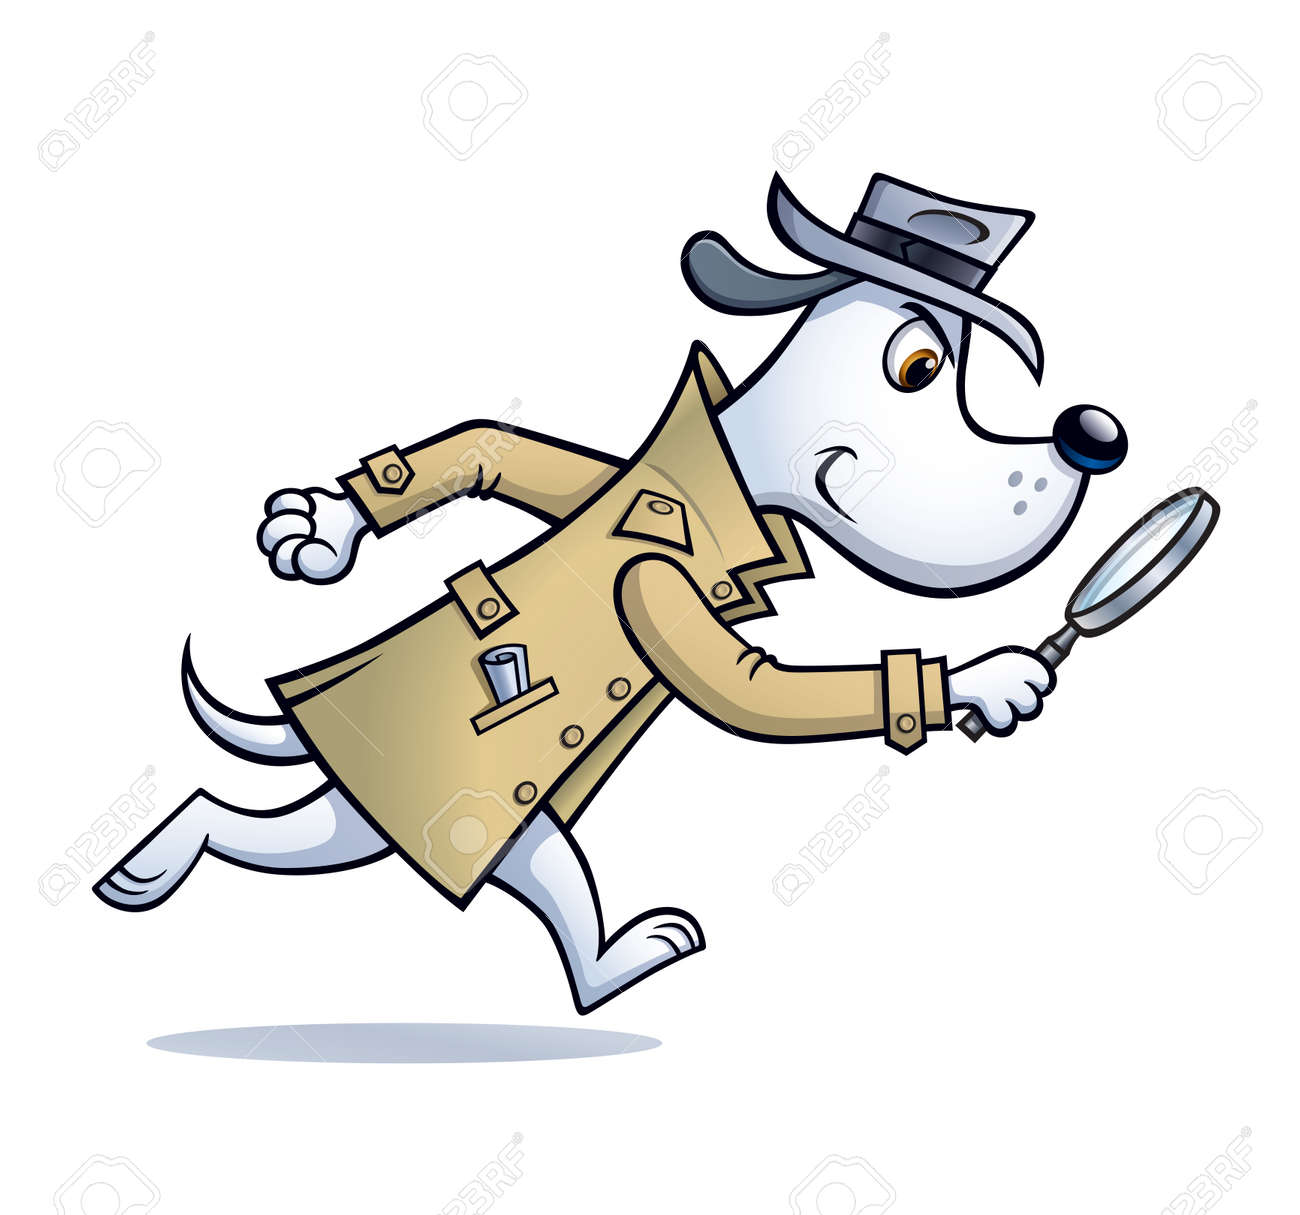 Cartoon of a dog detective character that is looking for clues with a magnifying glass and wearing a raincoat and hat. - 141150936